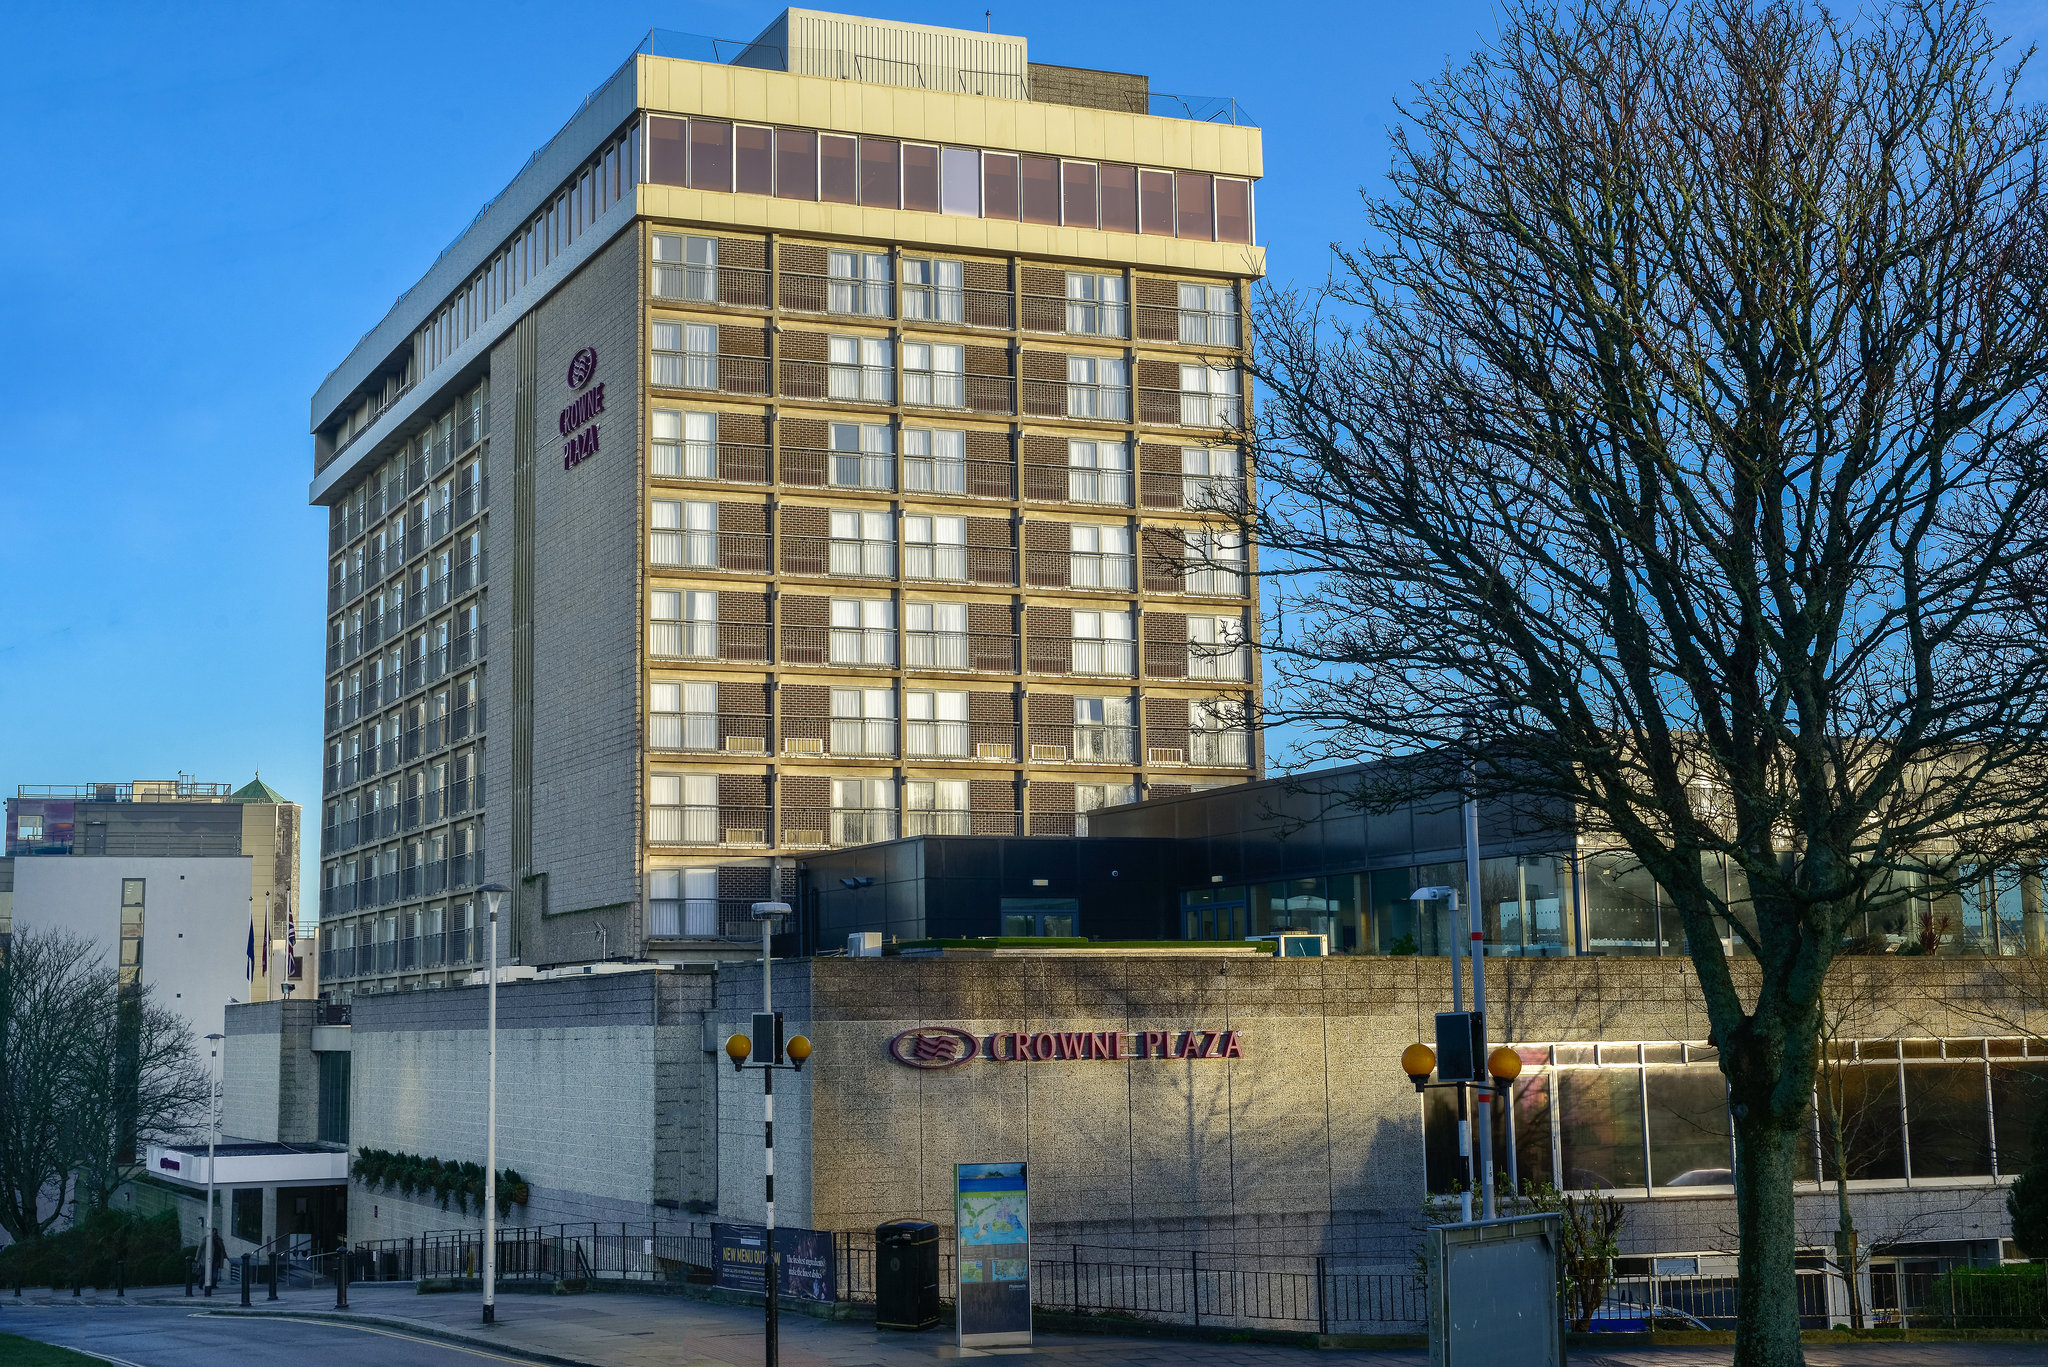 Crowne Plaza Plymouth